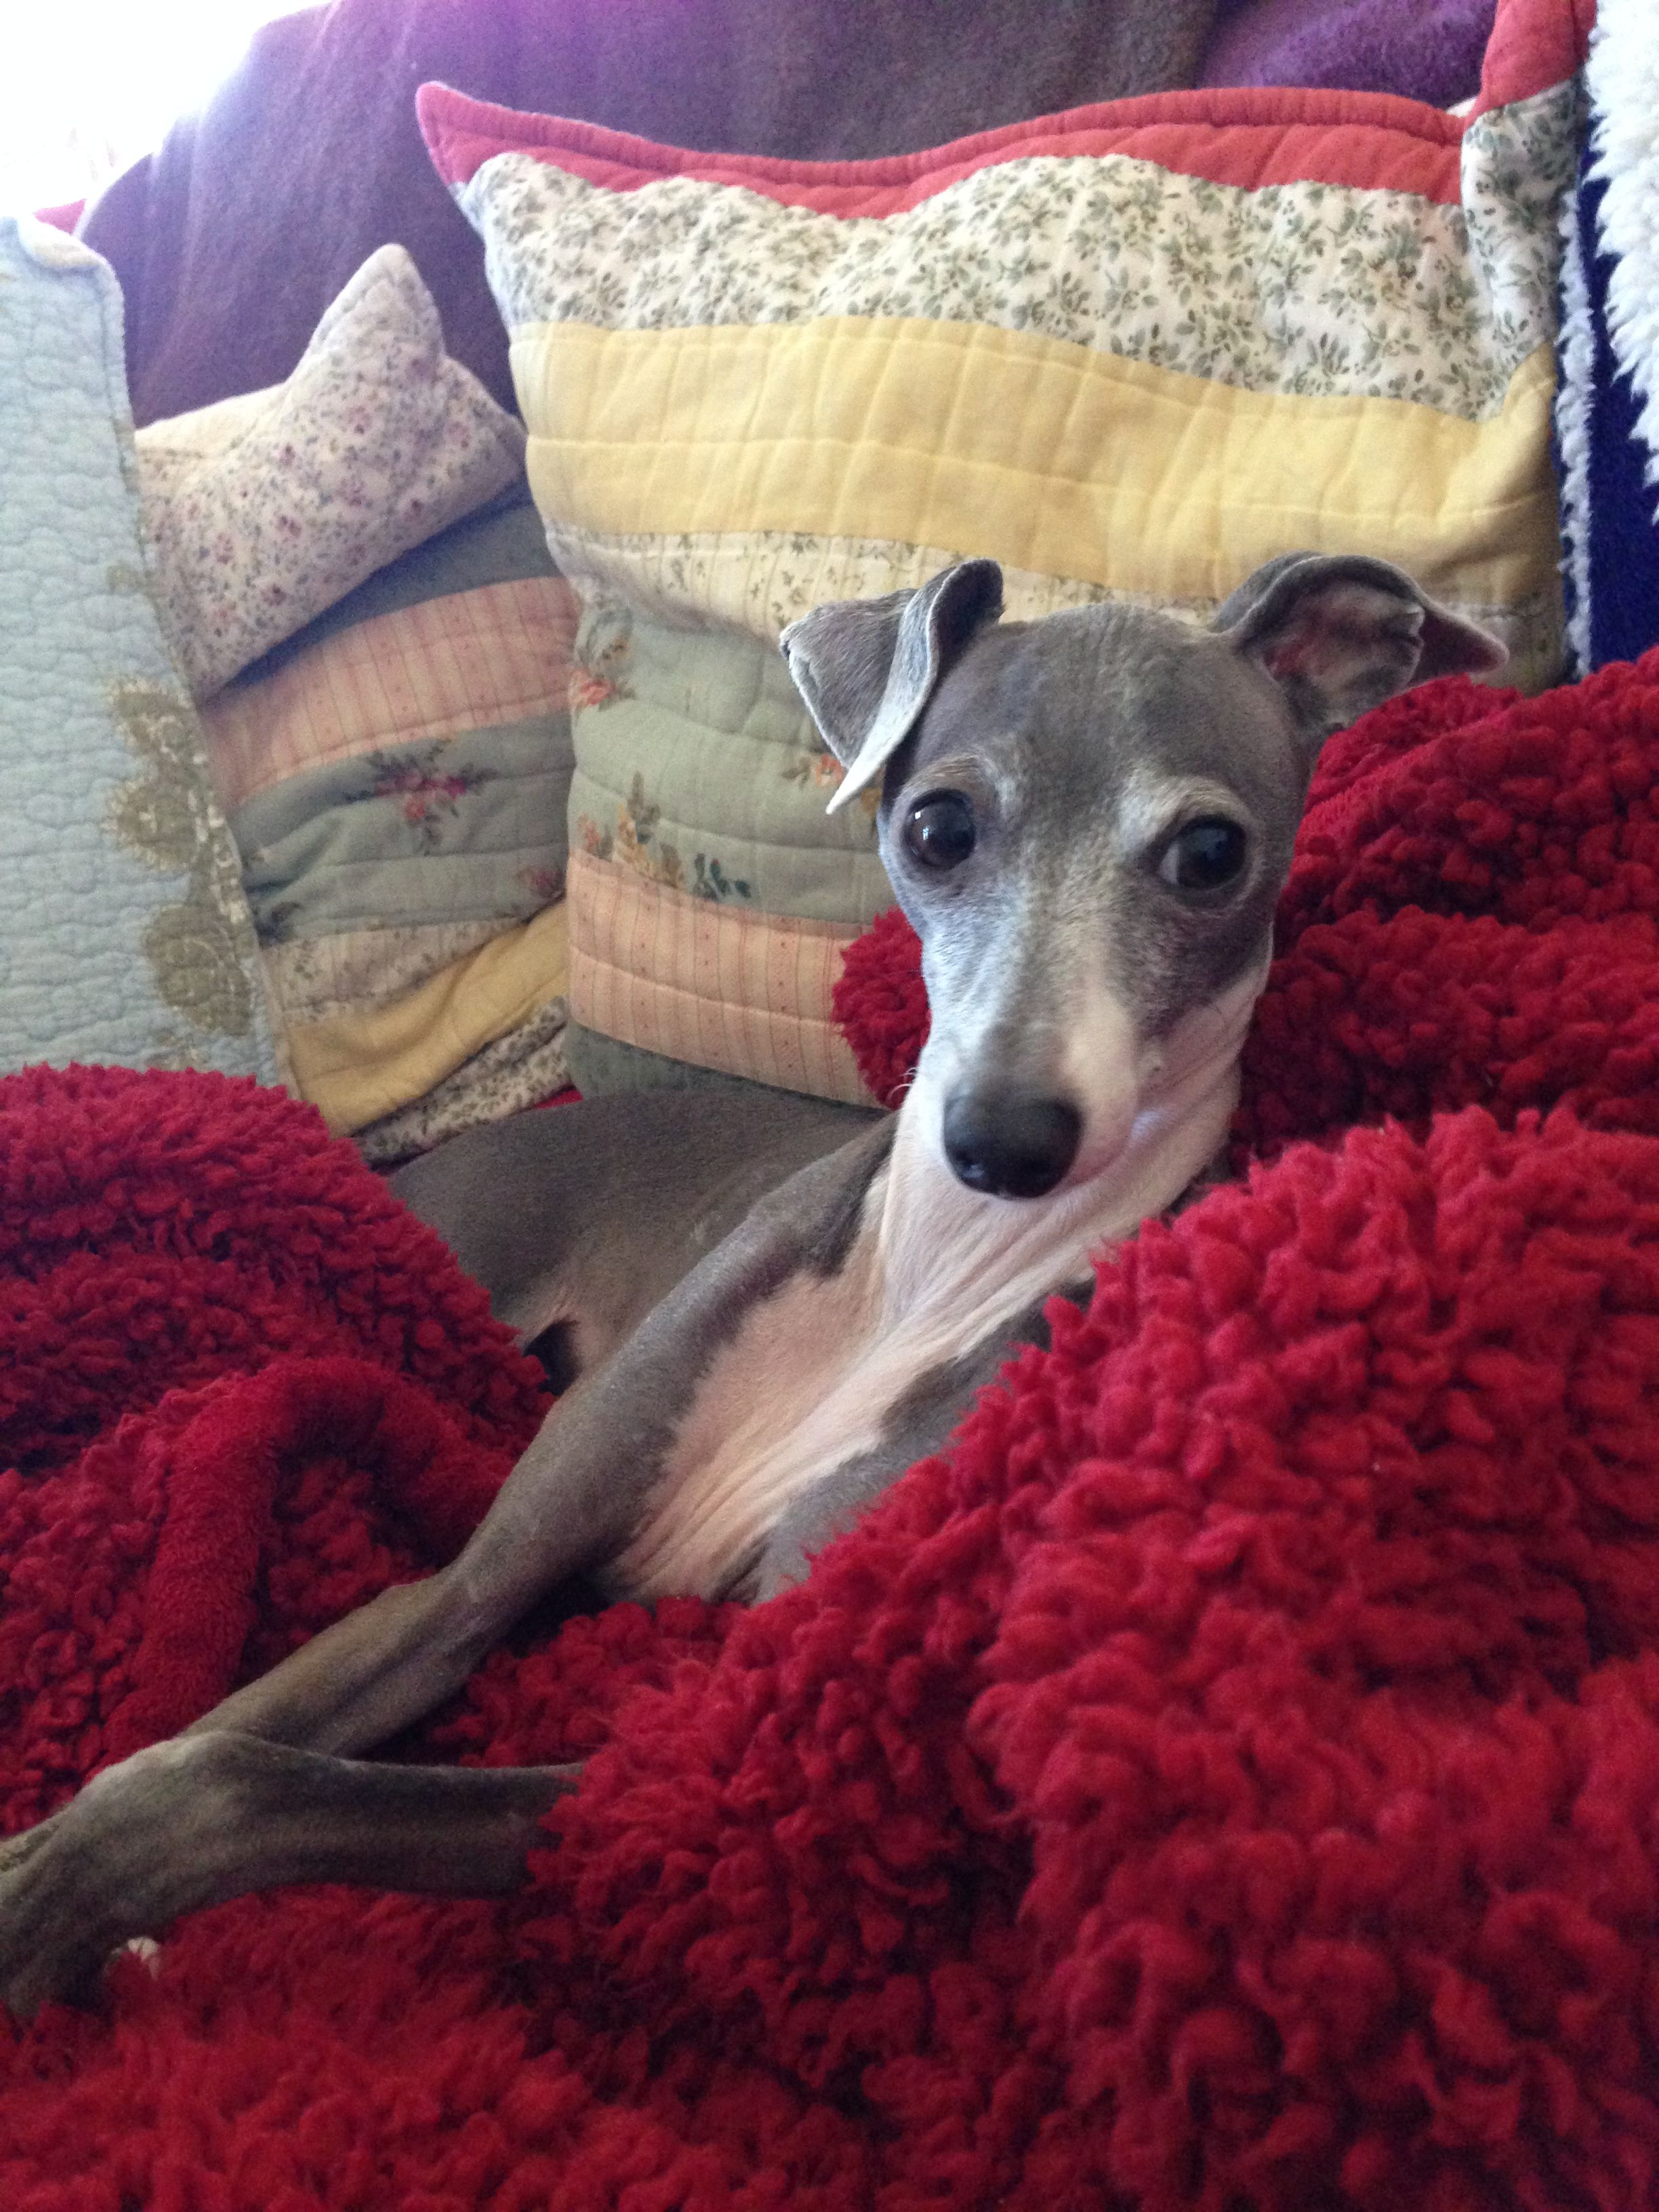 Italian Greyhound - reminds me of our dog!